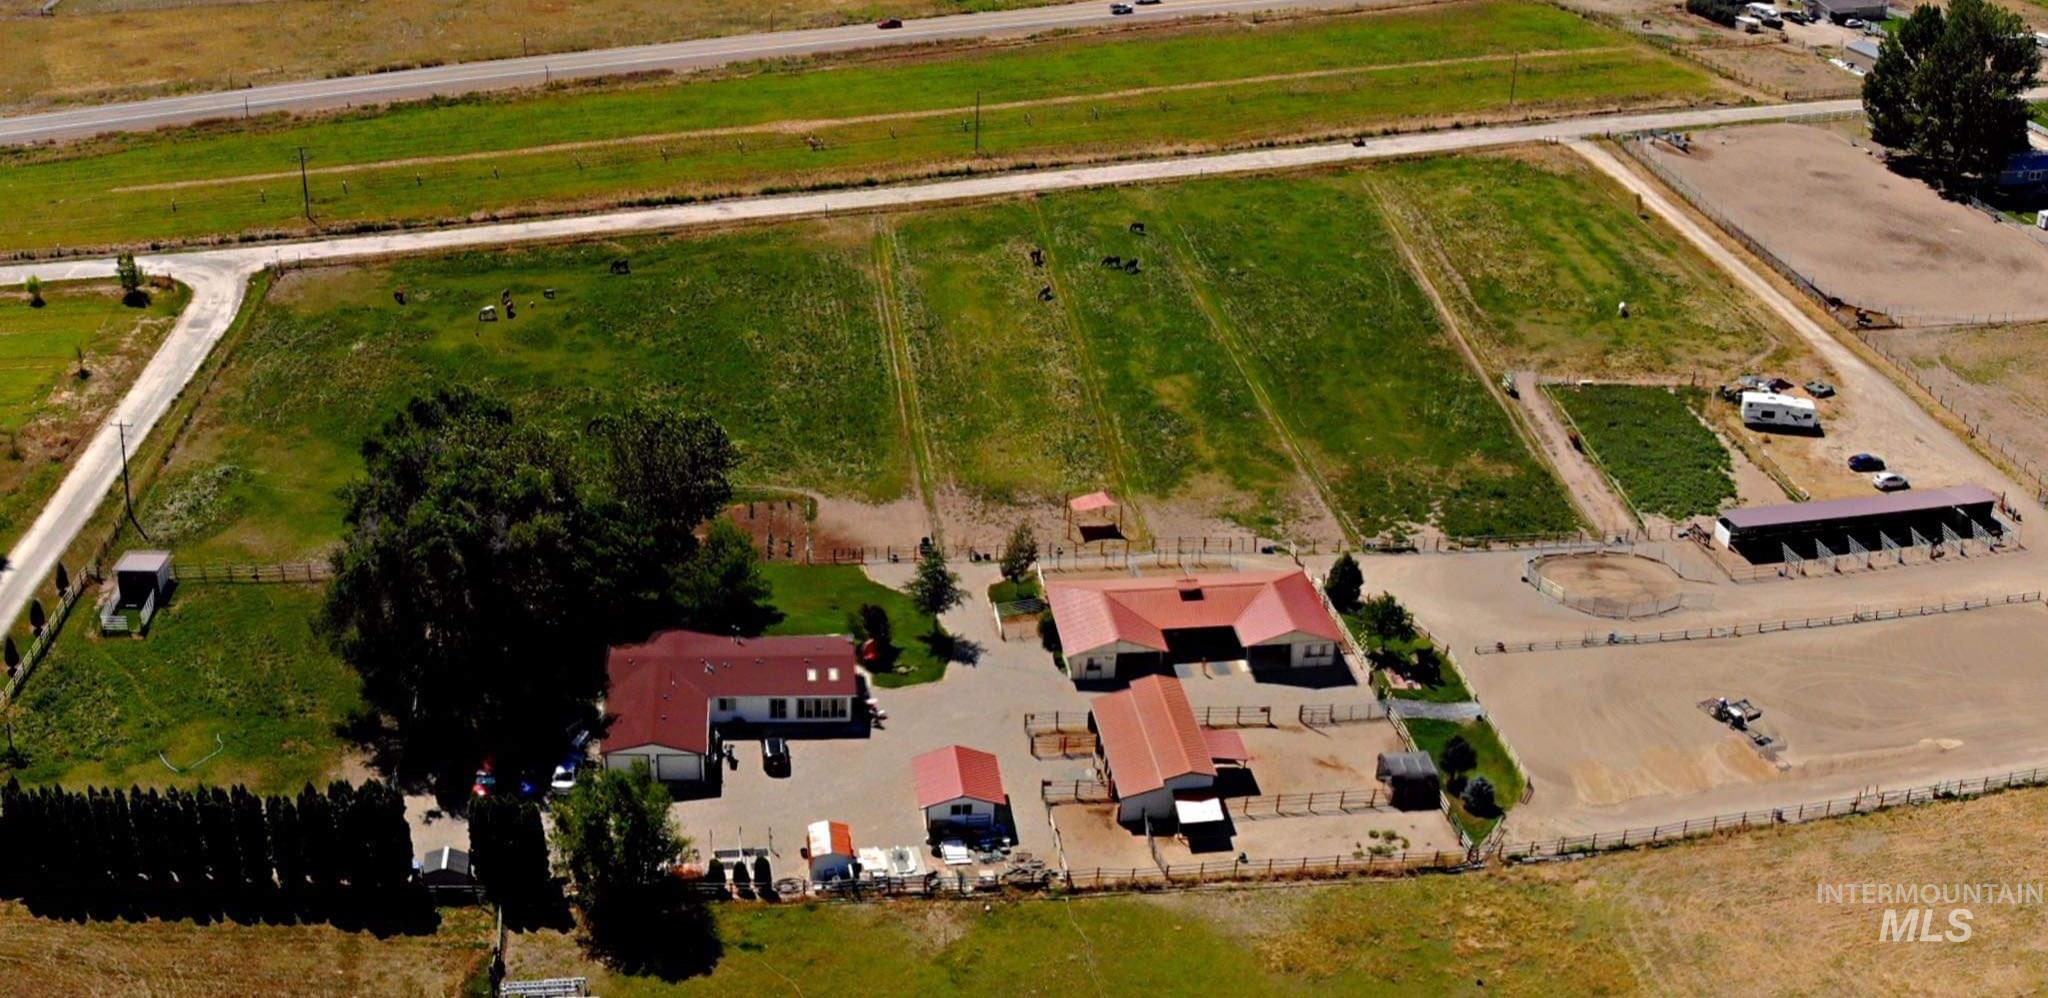 9210 W Edgeview Ln., Eagle, Idaho 83616, 3 Bedrooms, 2 Bathrooms, Residential For Sale, Price $989,000, 98785155